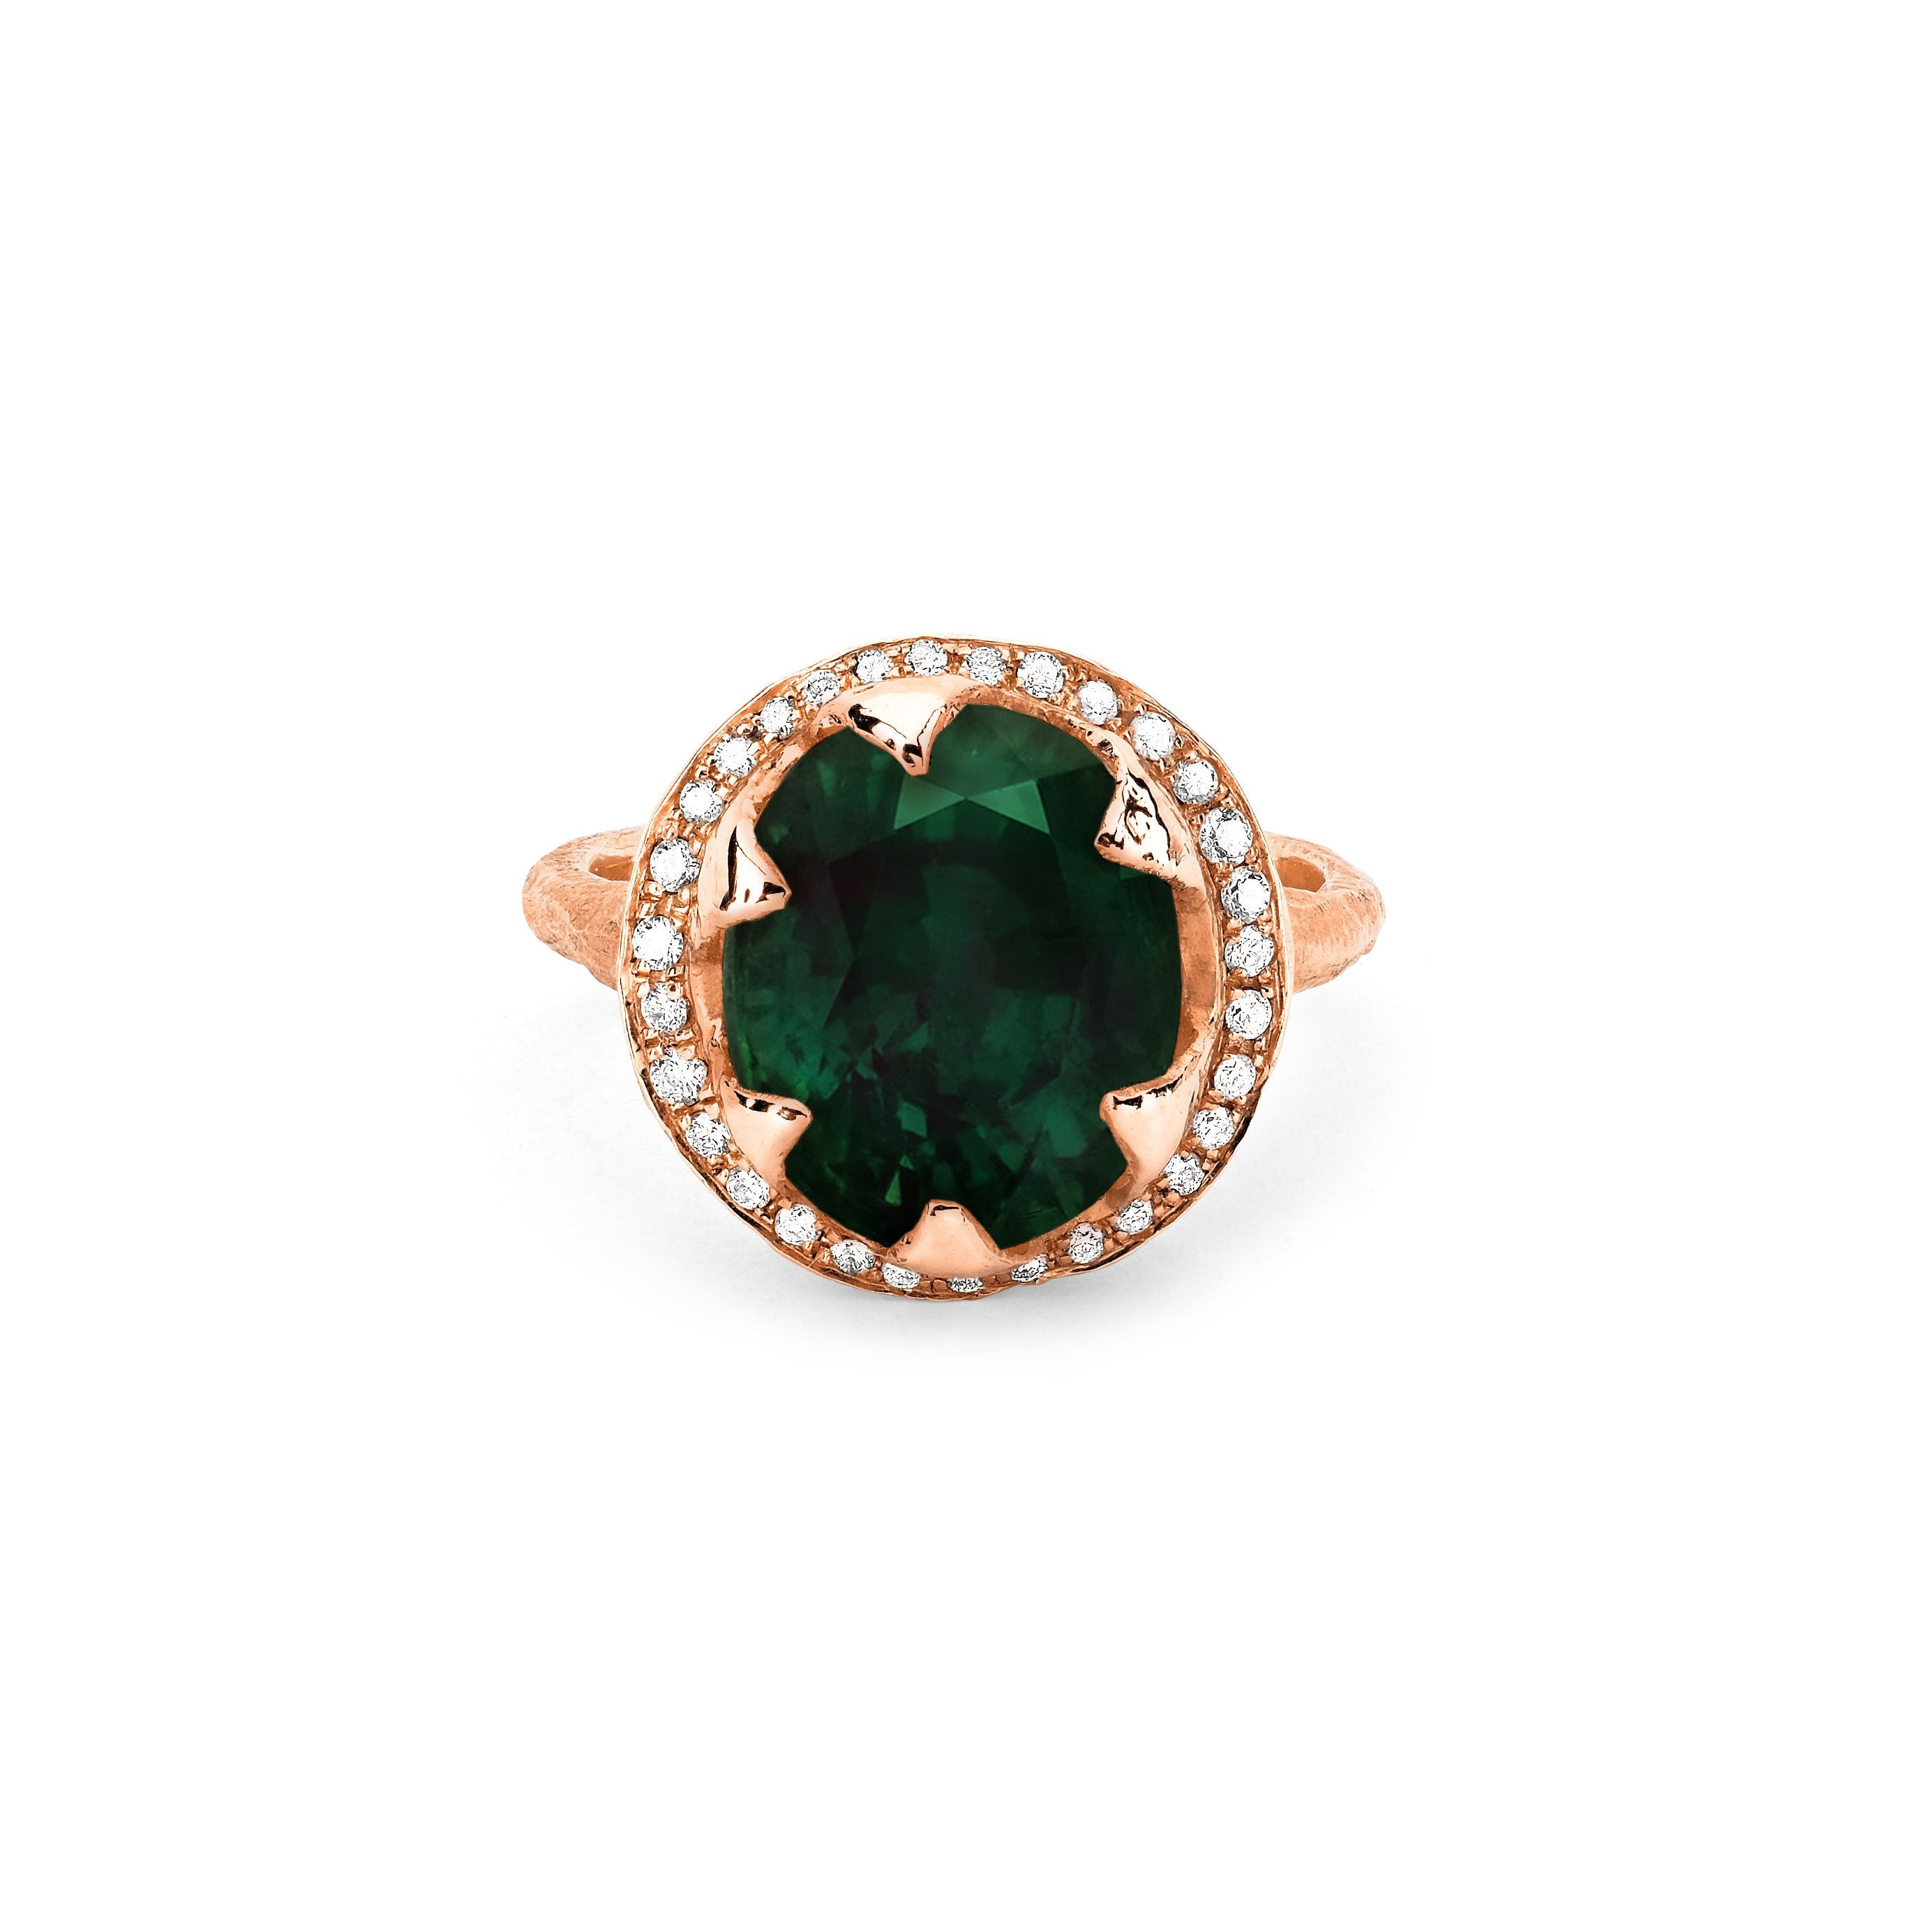 Queen Oval Zambian Emerald Ring with Full Pavé Diamond Halo